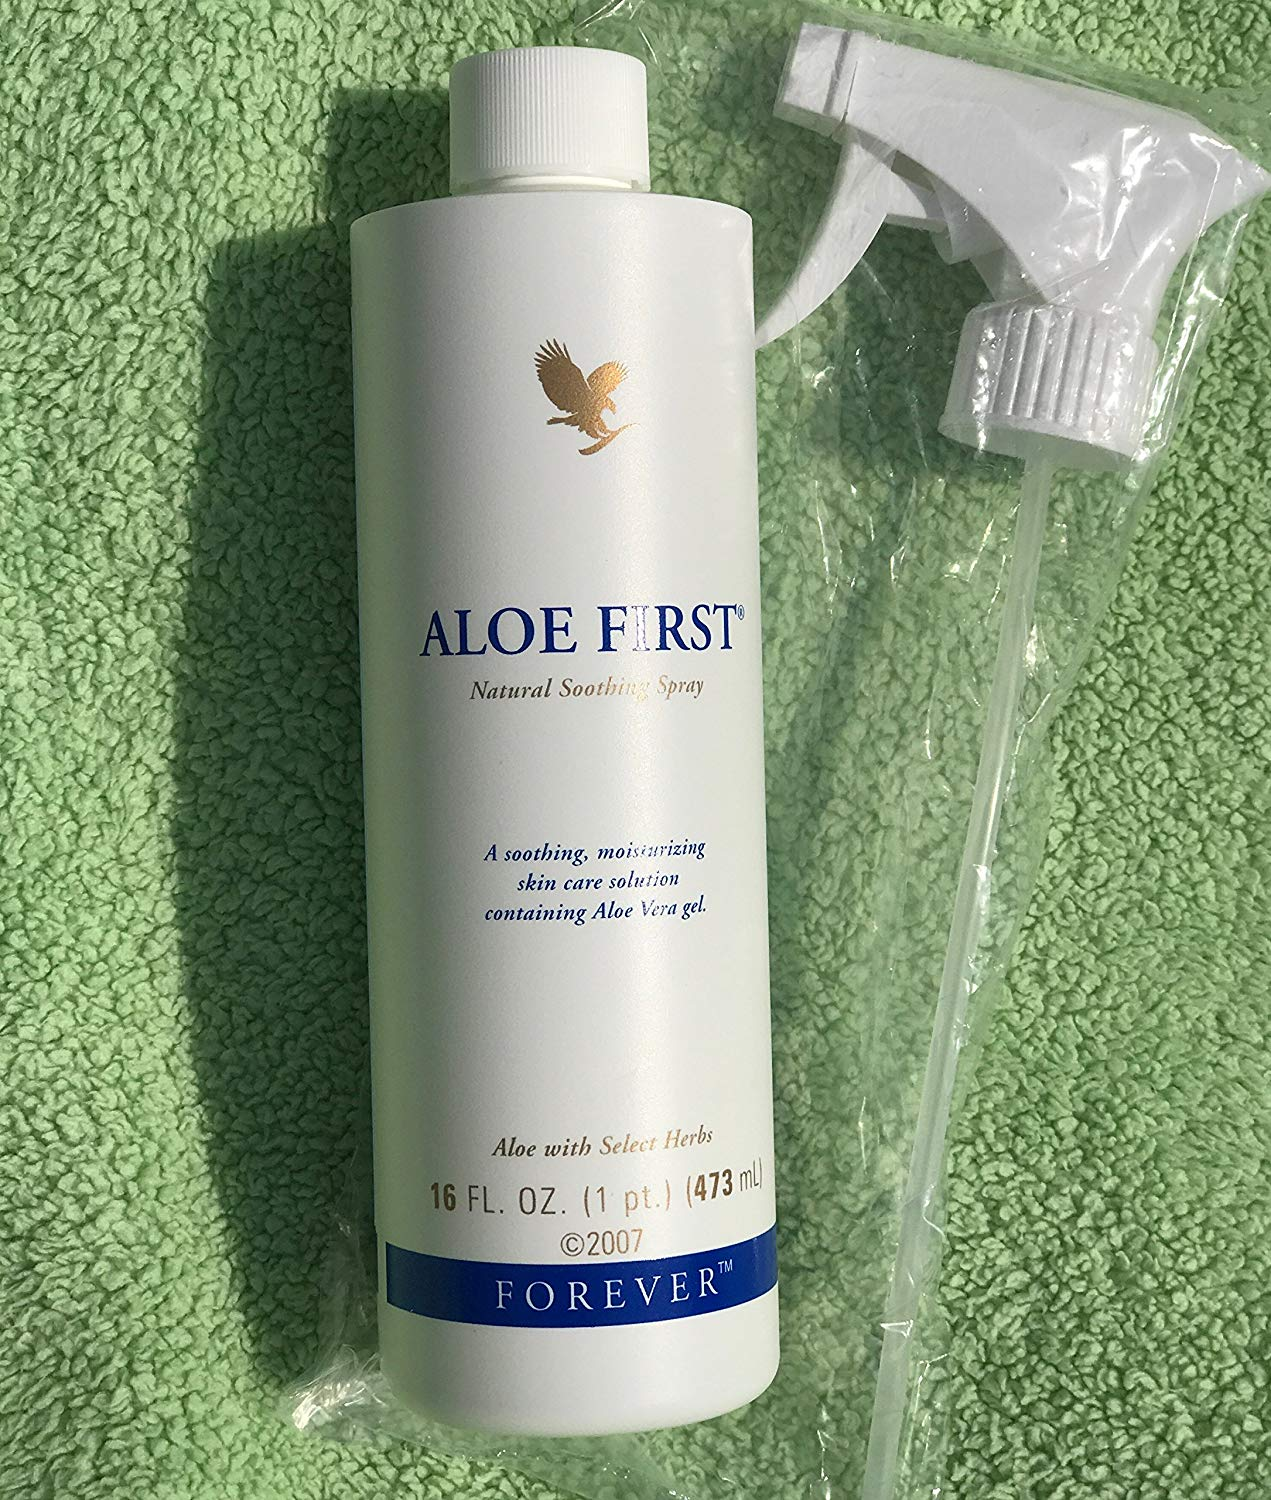 Aloe First Natural Soothing Sp…